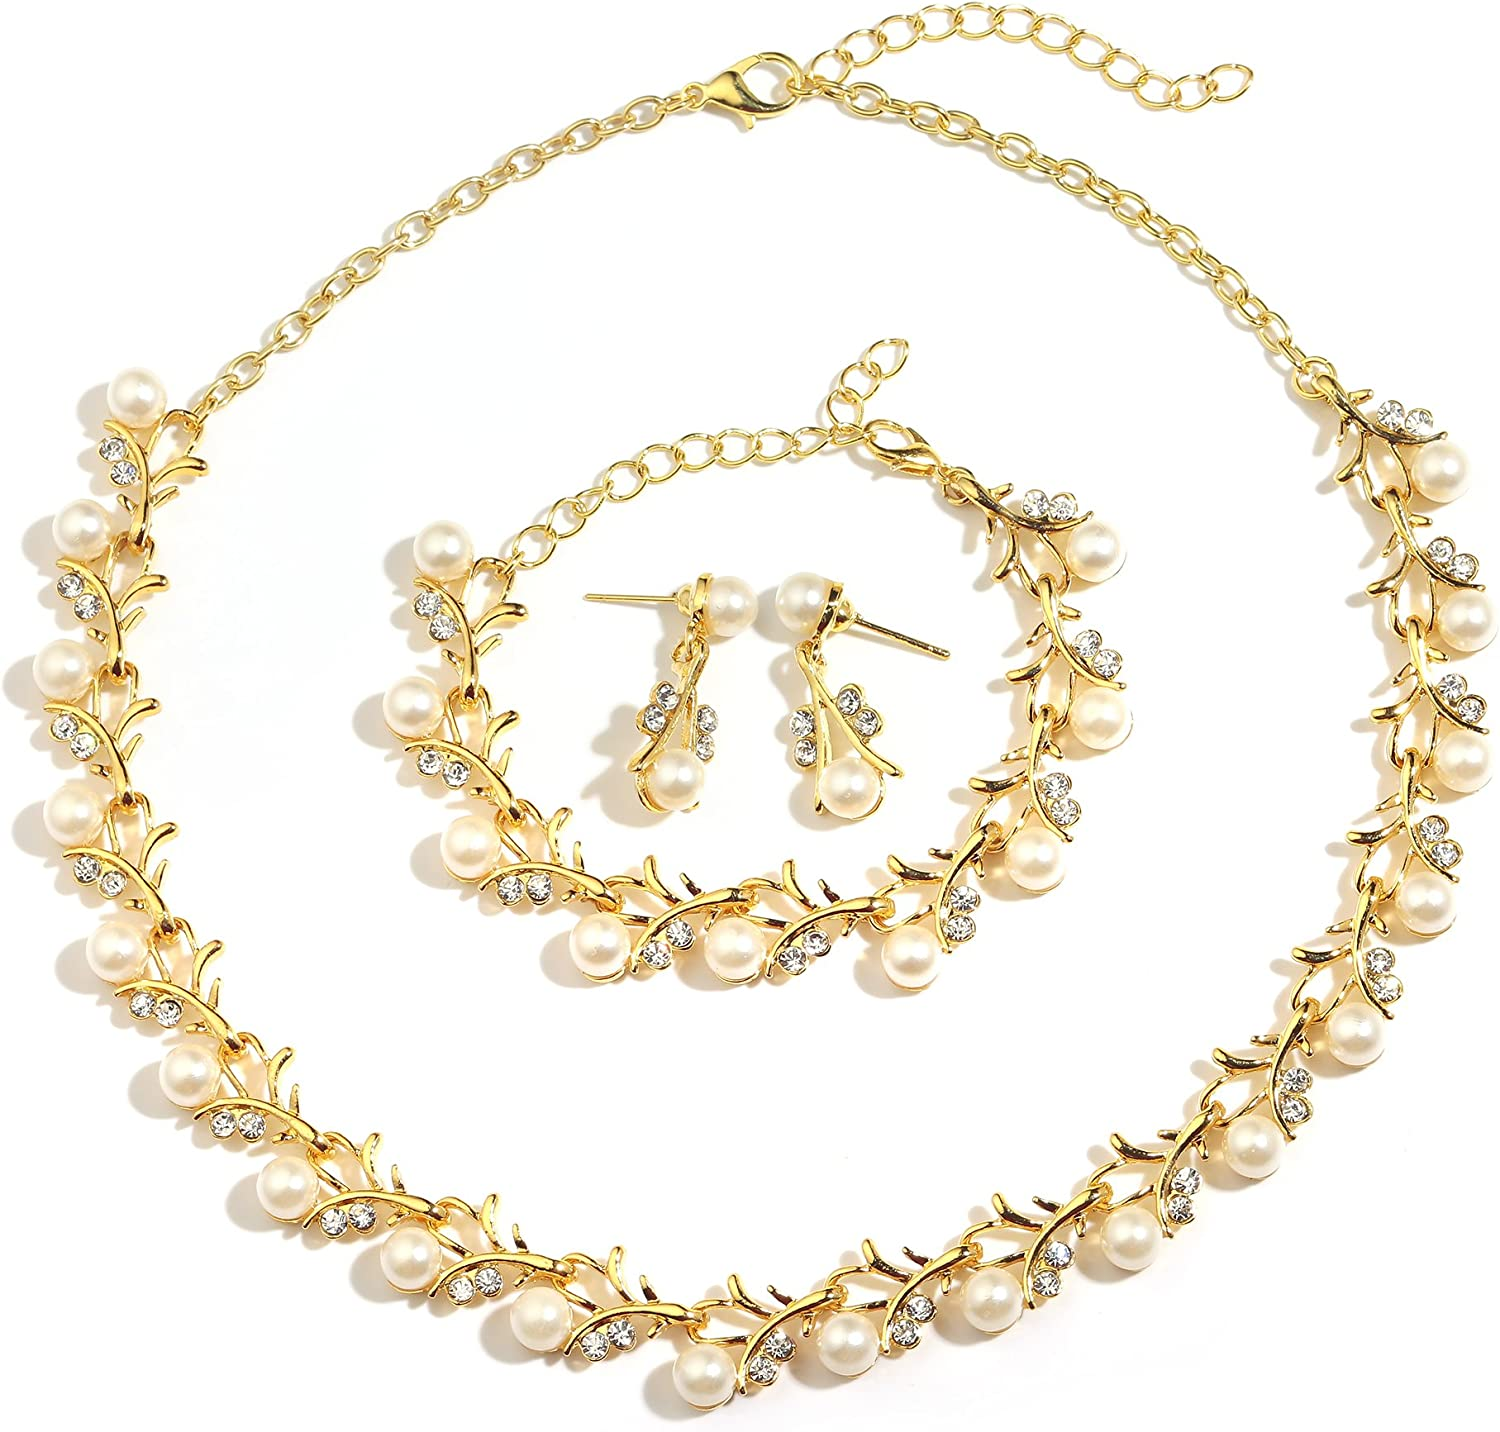 MOOCHI 18K Gold/Silver Plated Simulated Colorful Pearls Rhinestones Necklace Earrings Bracelet Jewelry Set for Women Costume Wedding Engagement Statement Prom Birthday Party